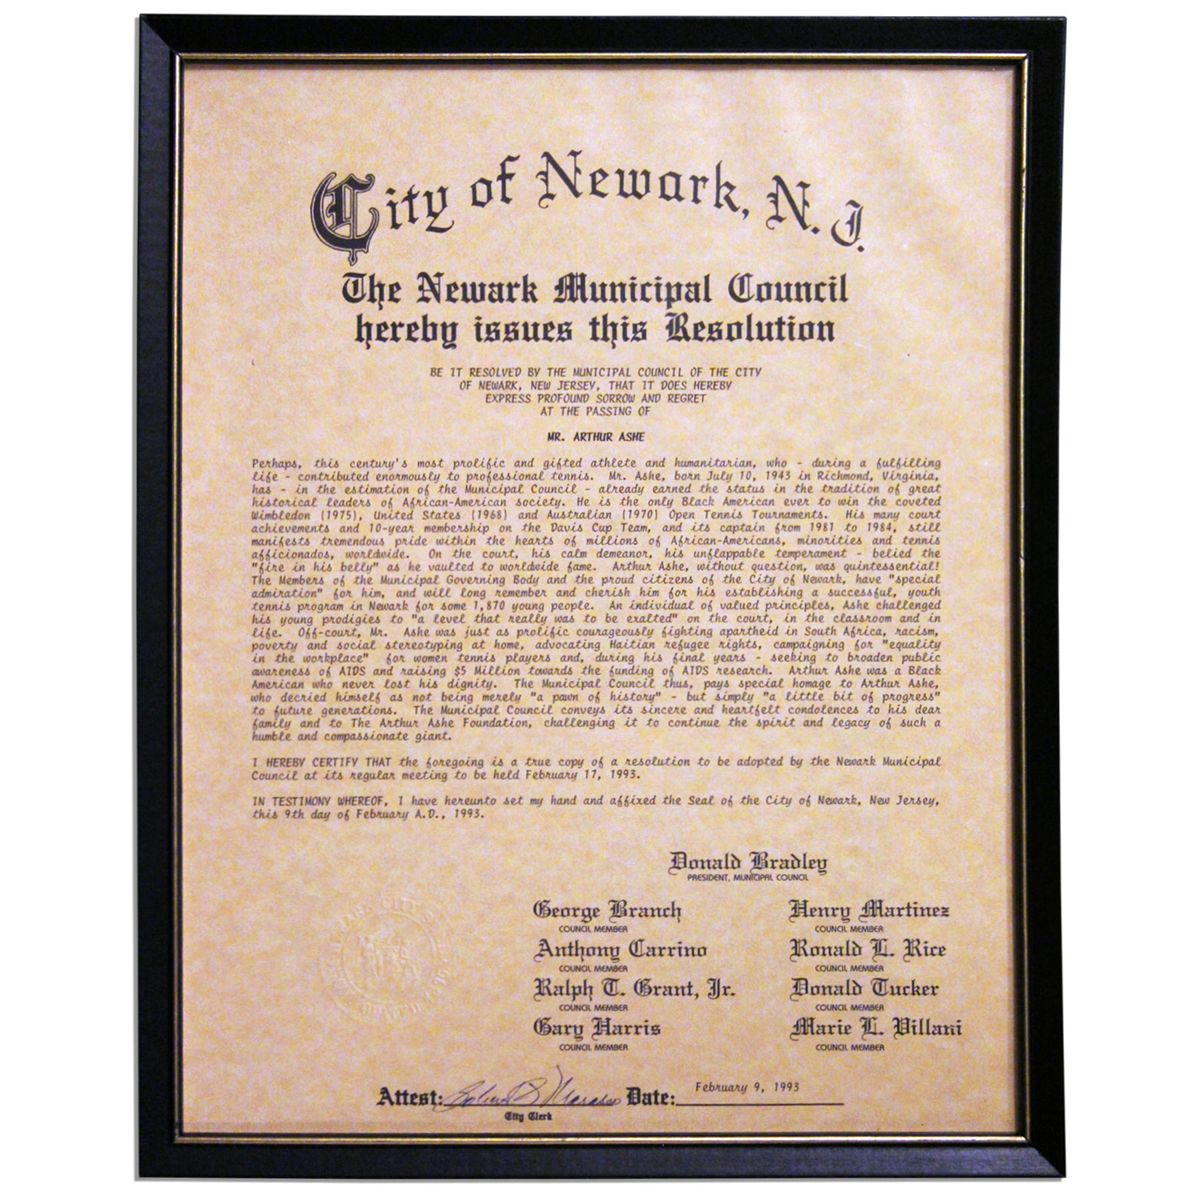 Arthur ashe memorial resolution adopted by the newark city council arthur ashe memorial resolution adopted by the newark city council is centurys most proli aiddatafo Image collections